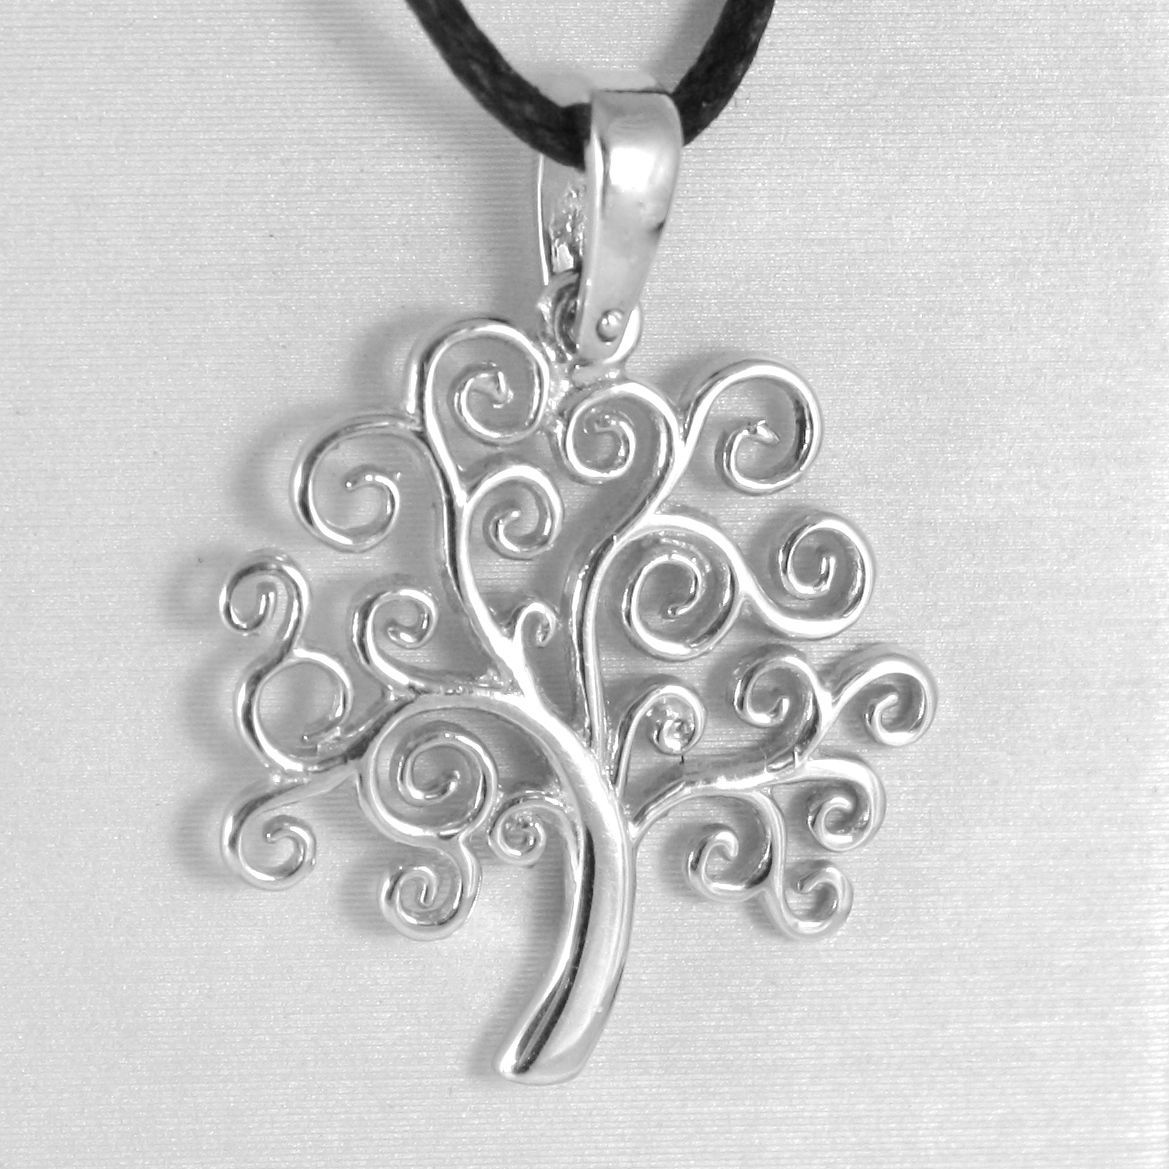 18K WHITE GOLD TREE OF LIFE PENDANT, CHARM, 0.95 INCHES, 24 mm, MADE IN ITALY